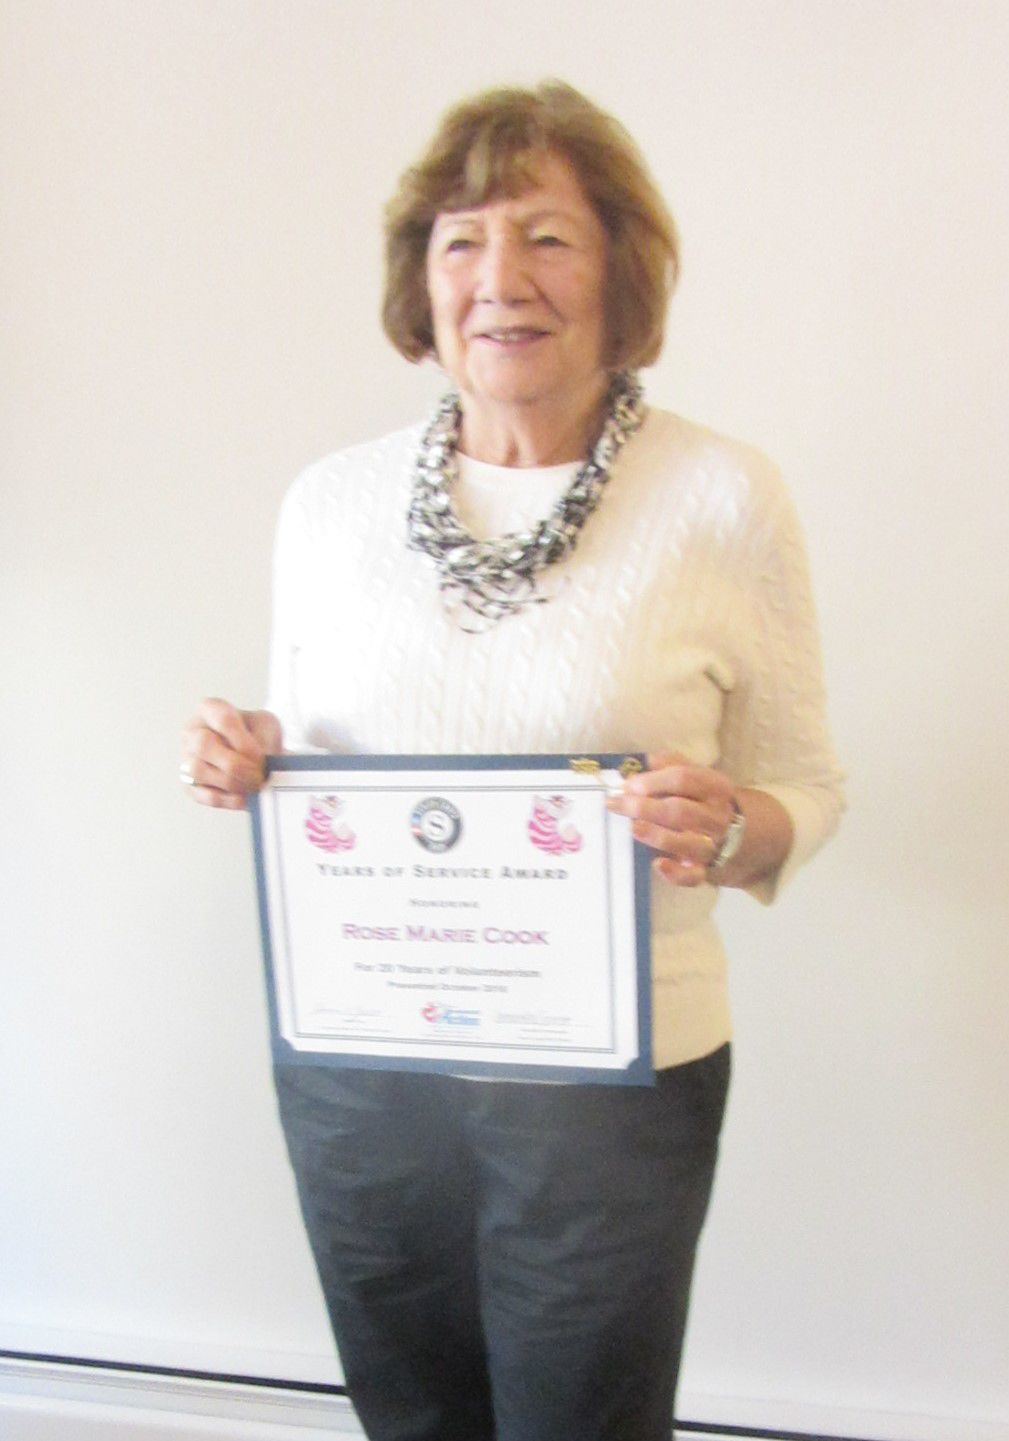 Cook receives certificate for 20 years of service